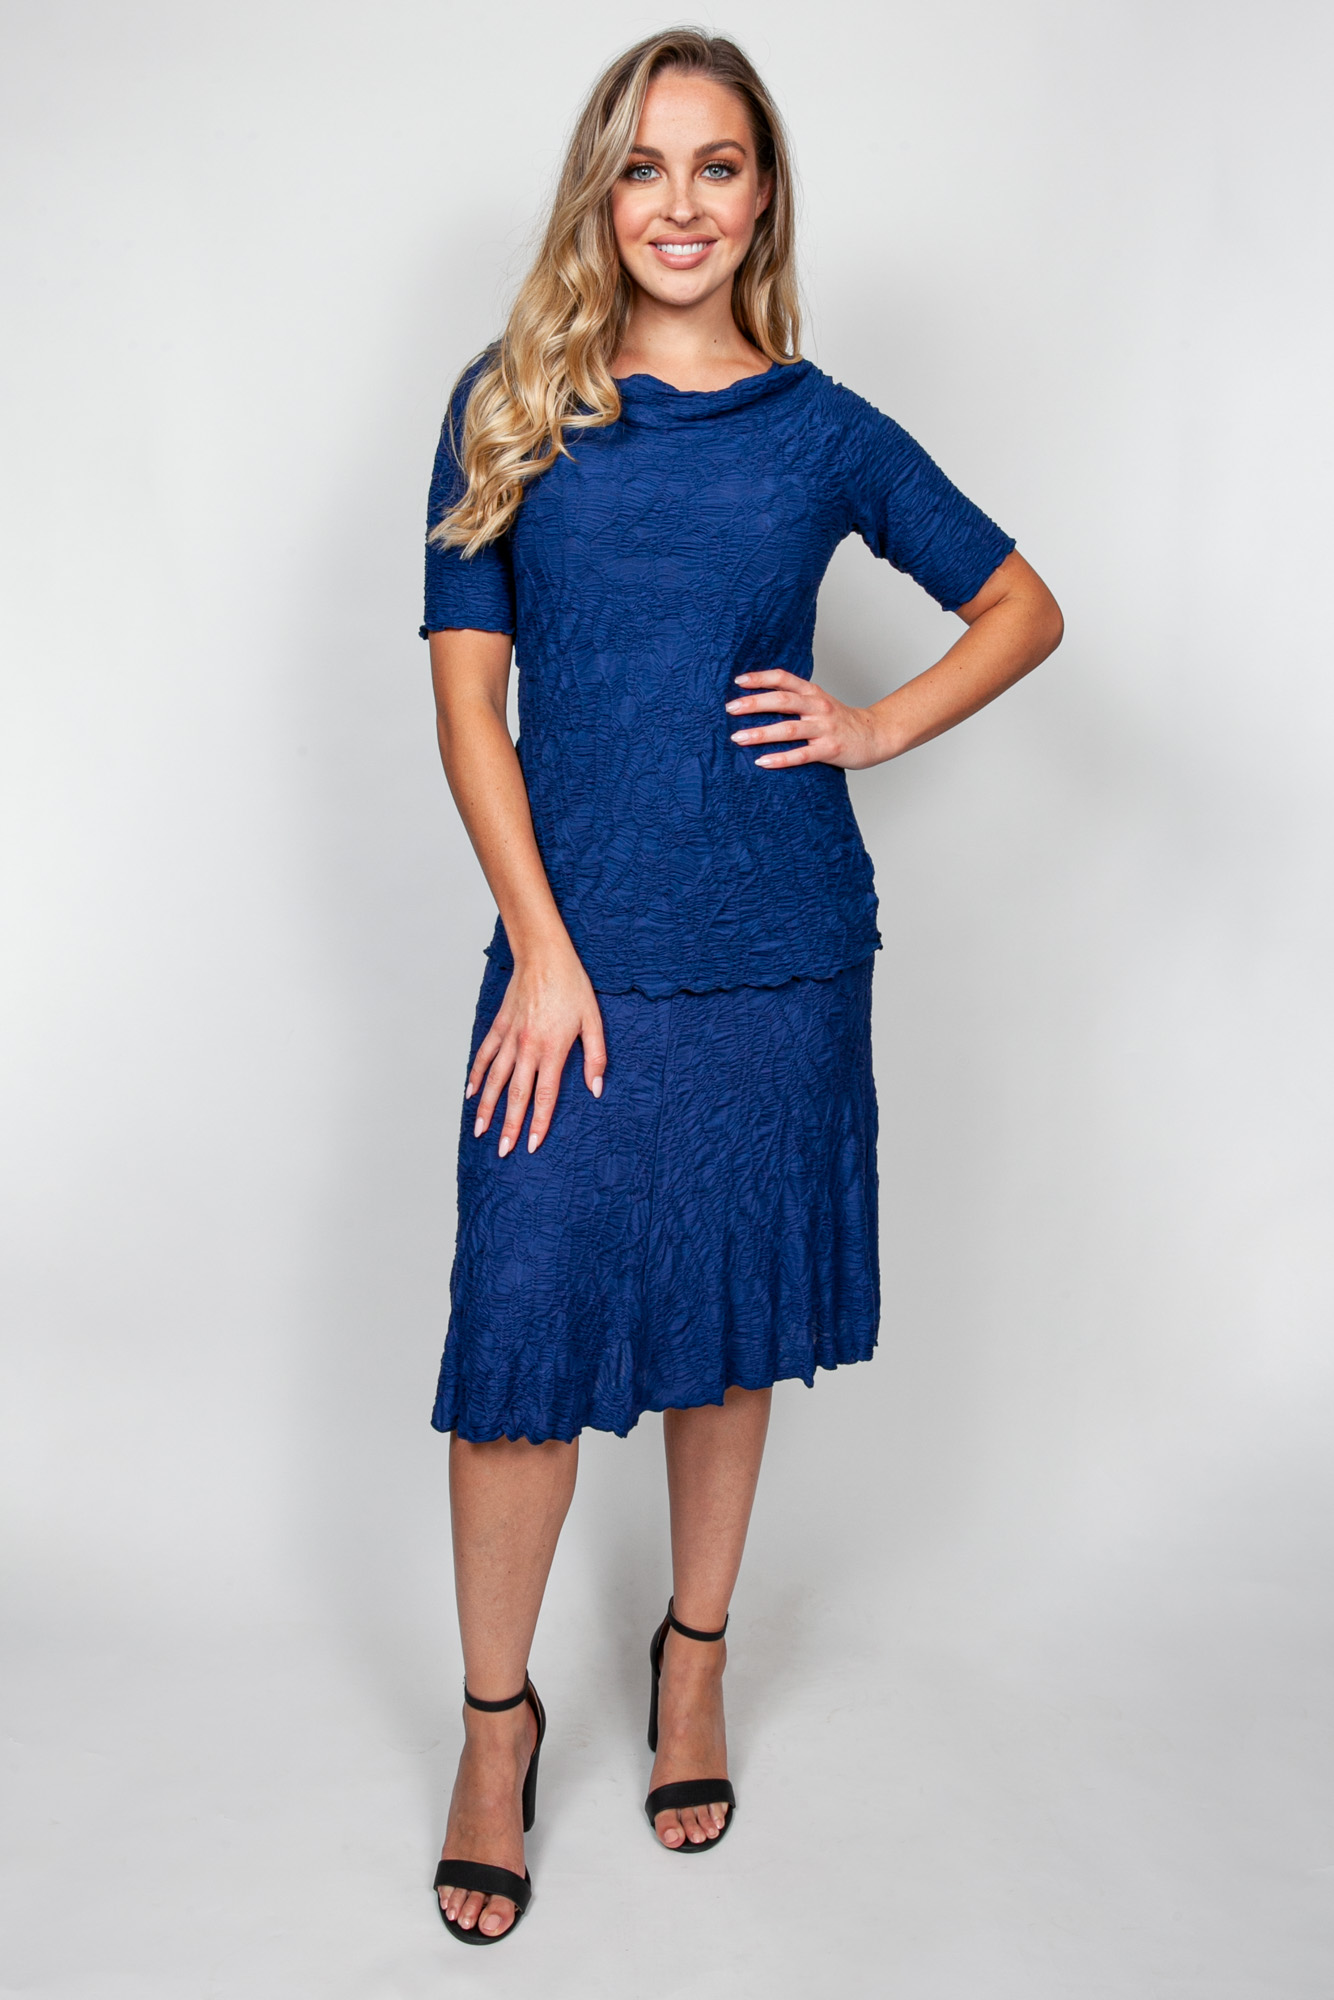 Style # 32476-20, p 6 DreamCatcher Skirt Top #32346-20 Color: Navy + 10 others